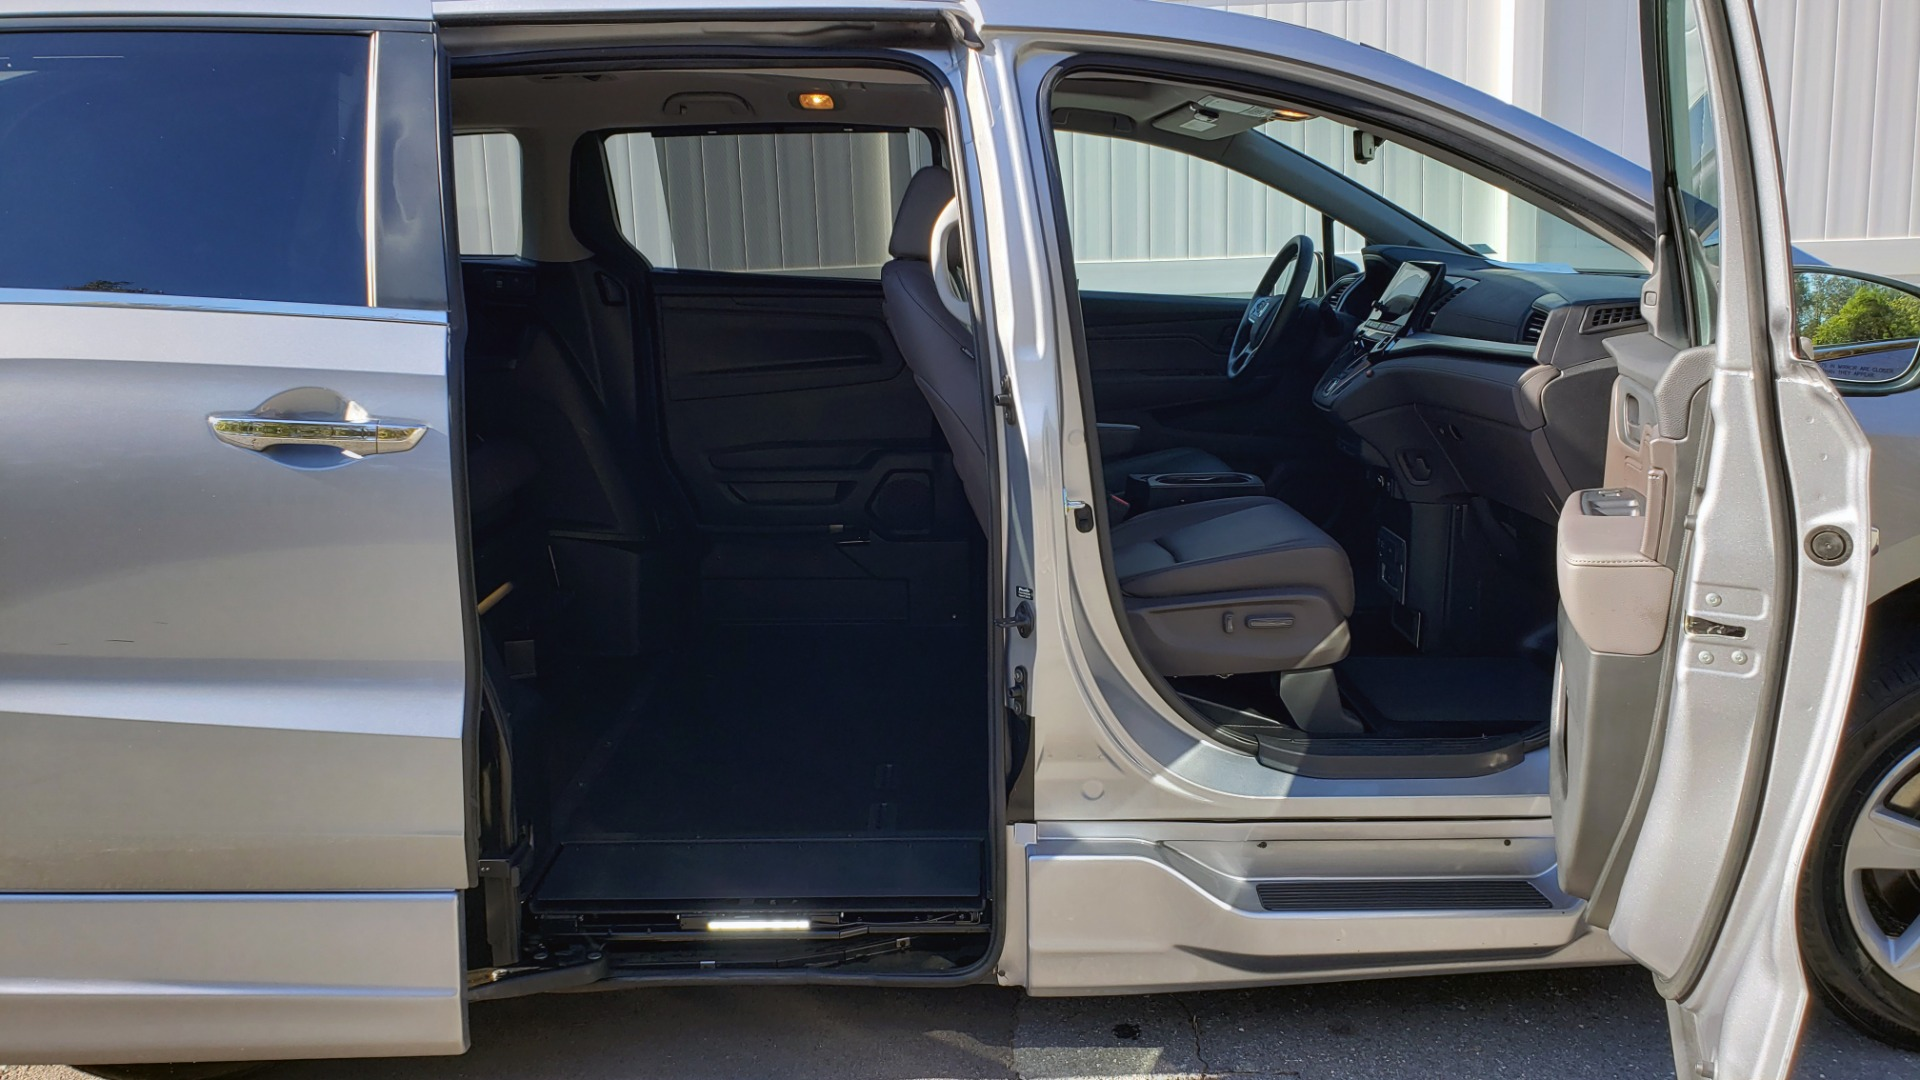 Used 2019 Honda ODYSSEY EX-L BRAUNABILITY / NAV / RES / LKA / BLUE-RAY / SUNROOF / REARVIEW for sale Sold at Formula Imports in Charlotte NC 28227 35